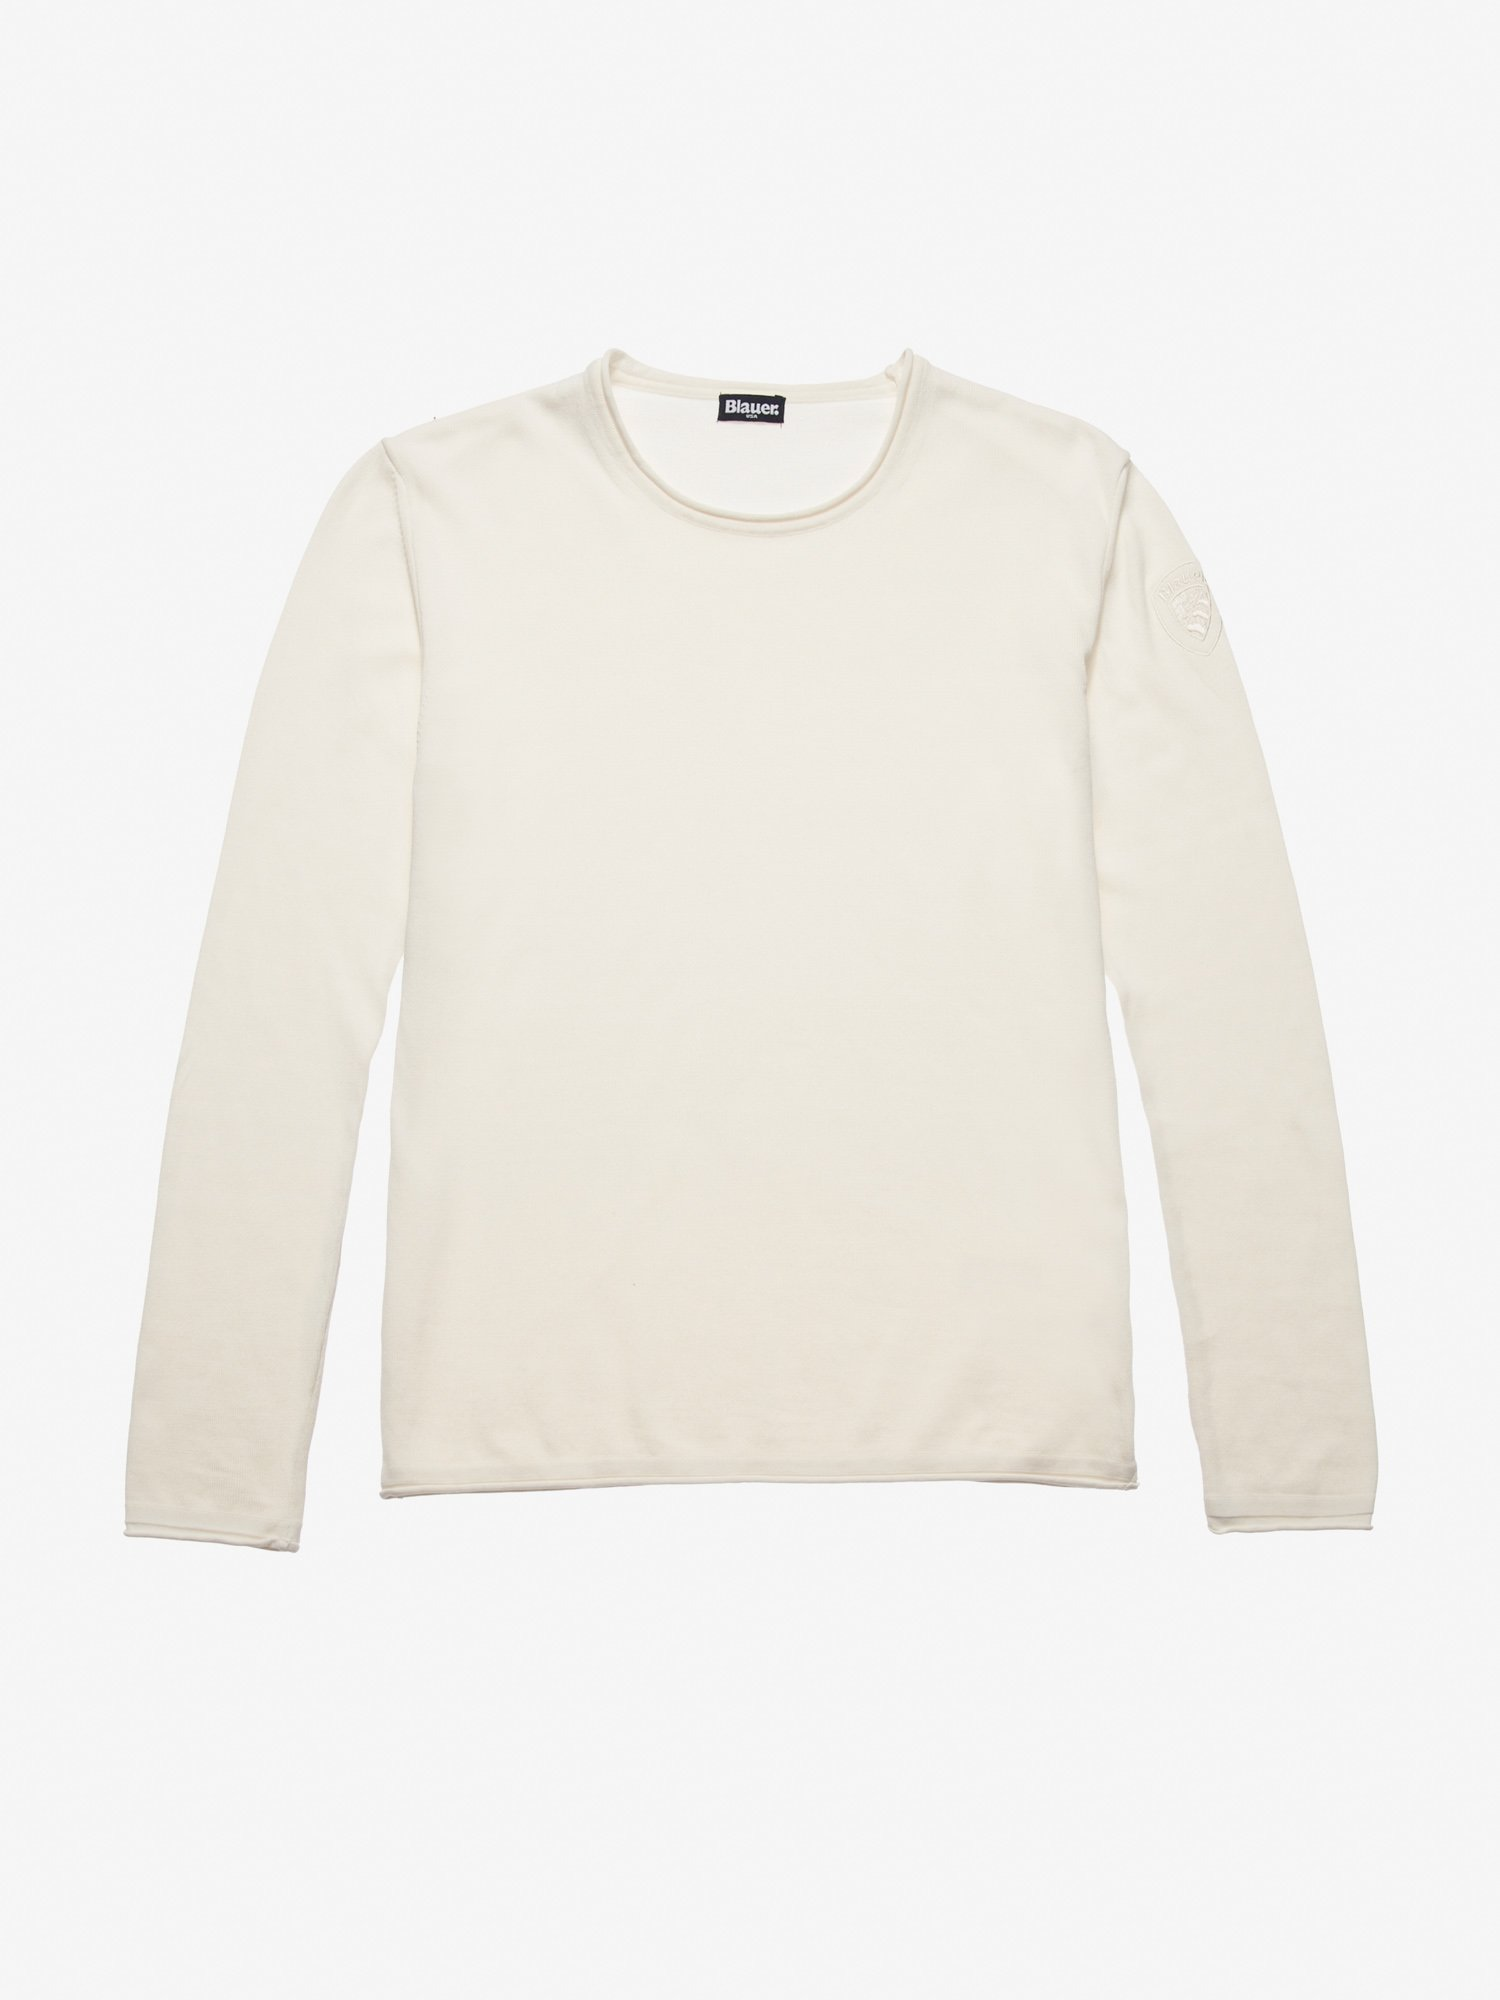 CREW NECK SWEATER WITH BLAUER SHIELD - Blauer